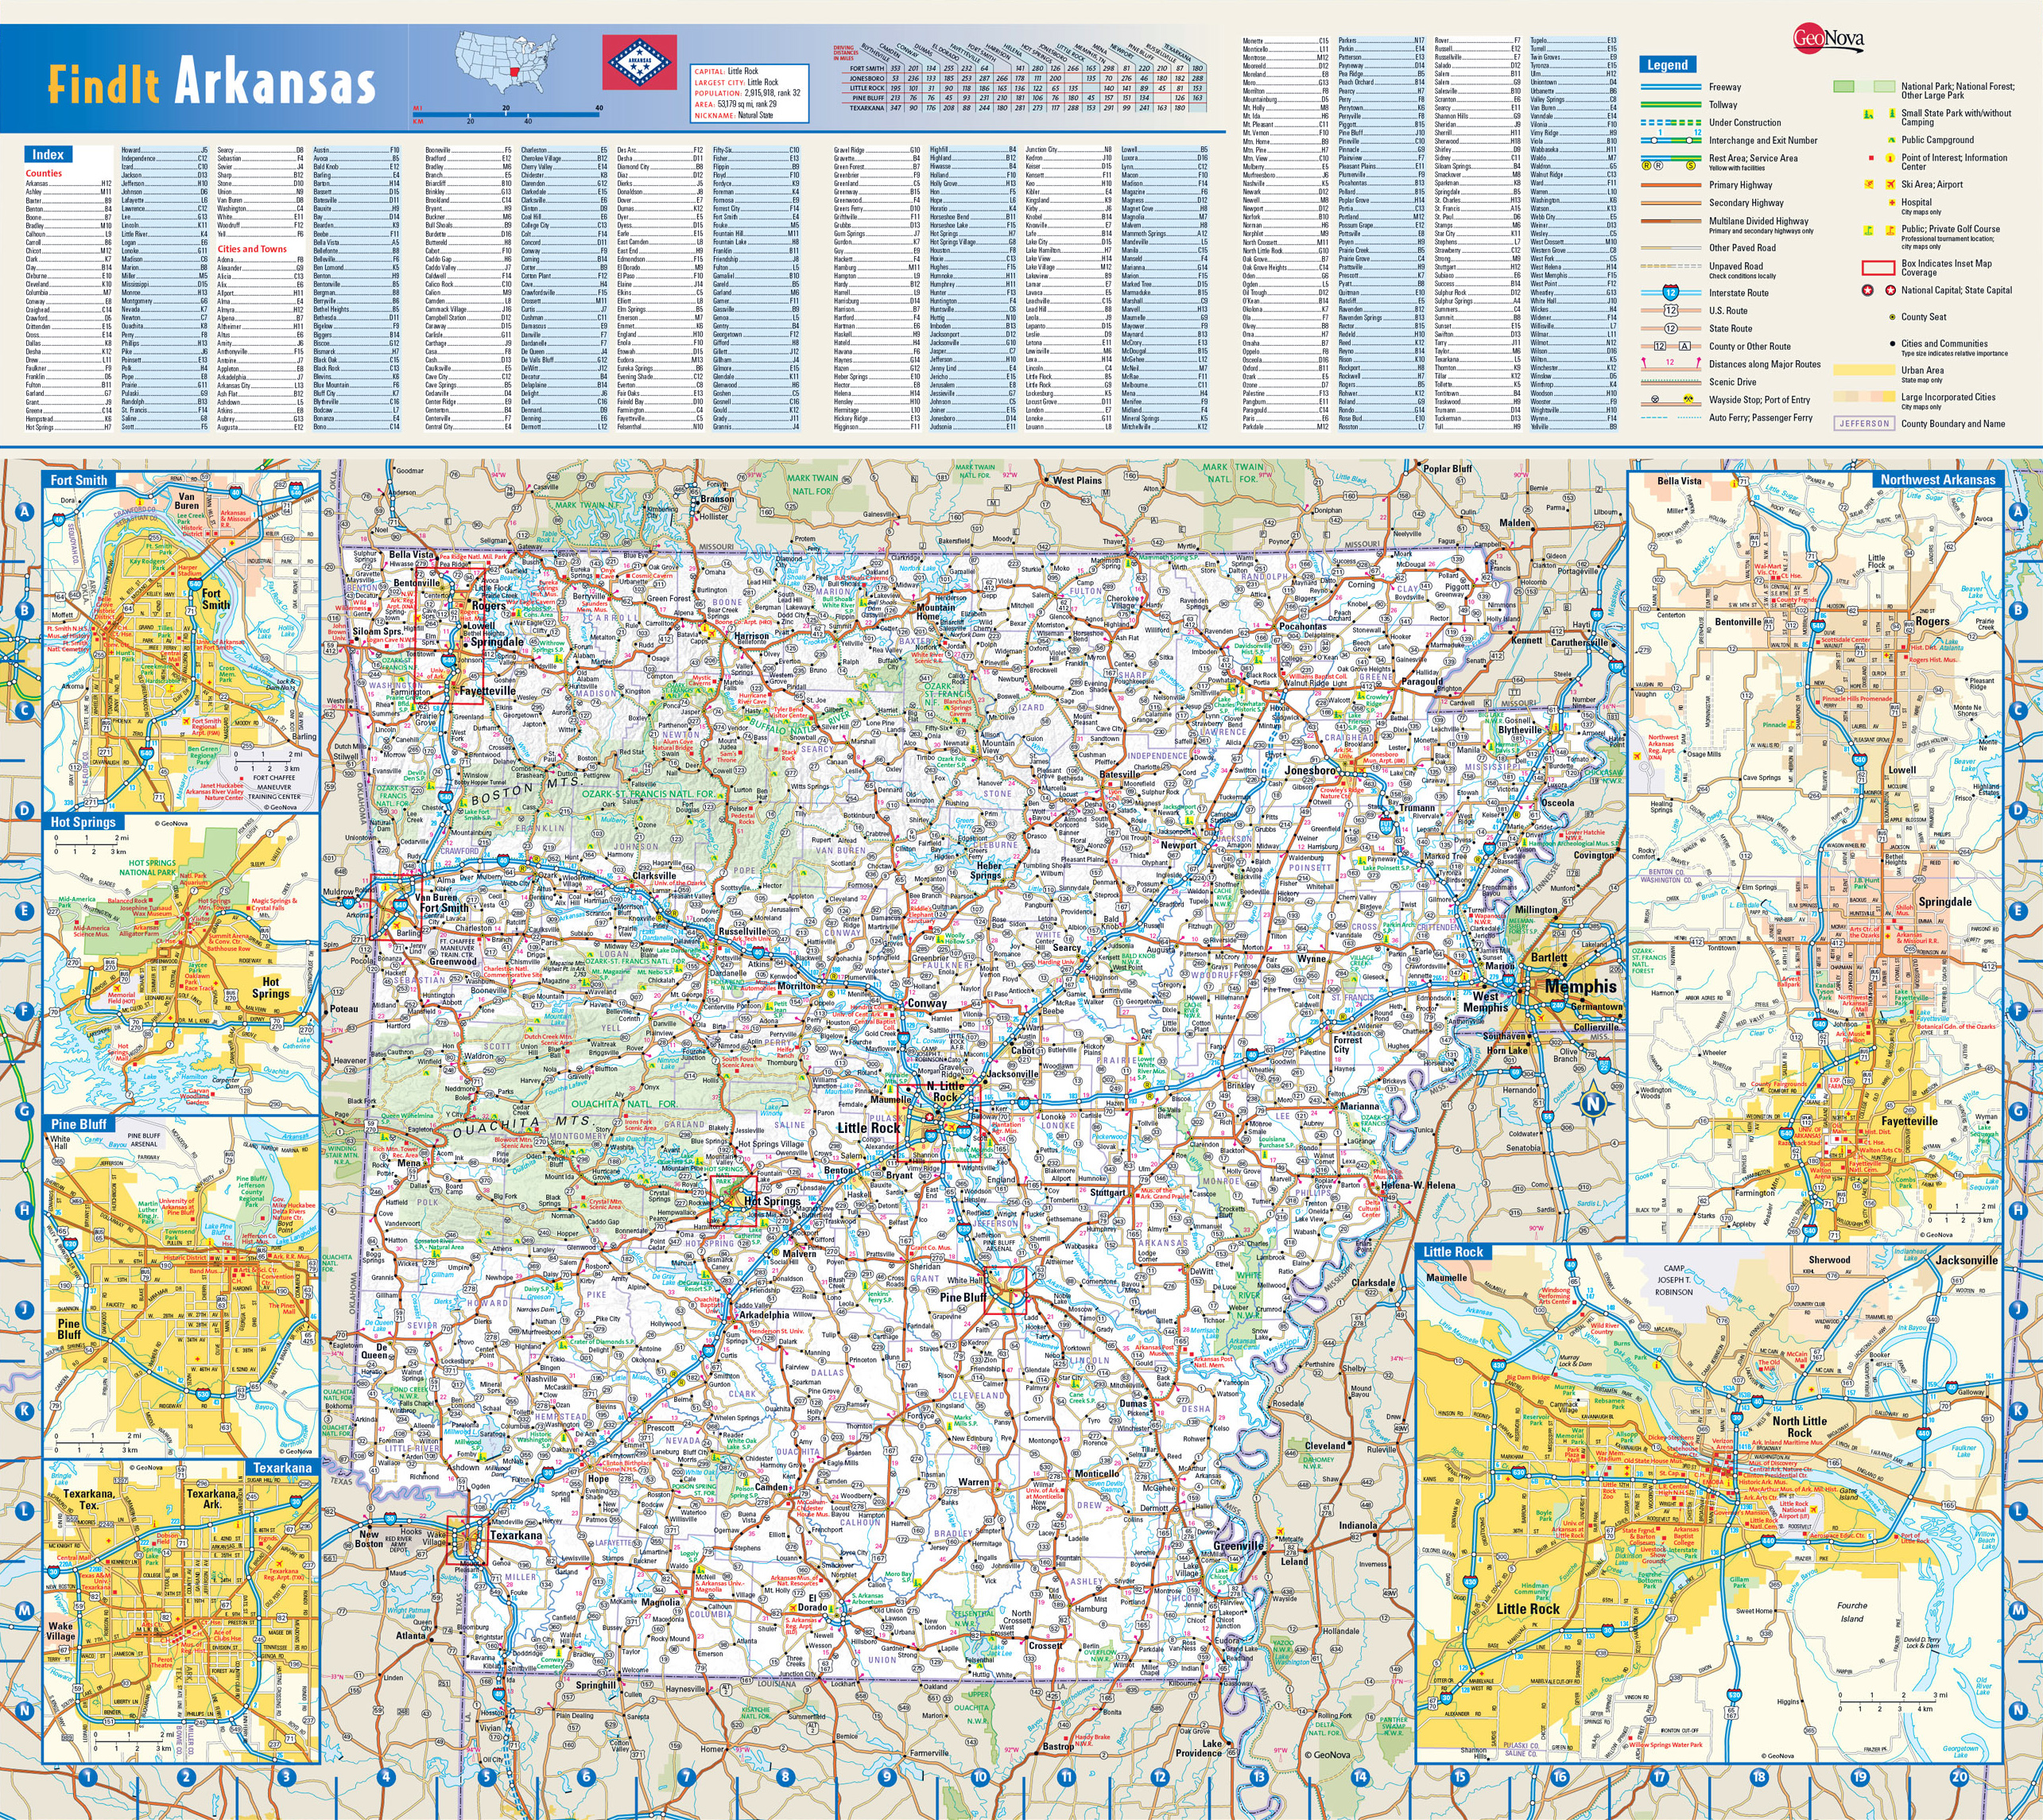 Arkansas Map With Cities And Towns Detailed roads and highways map of Arkansas state with national